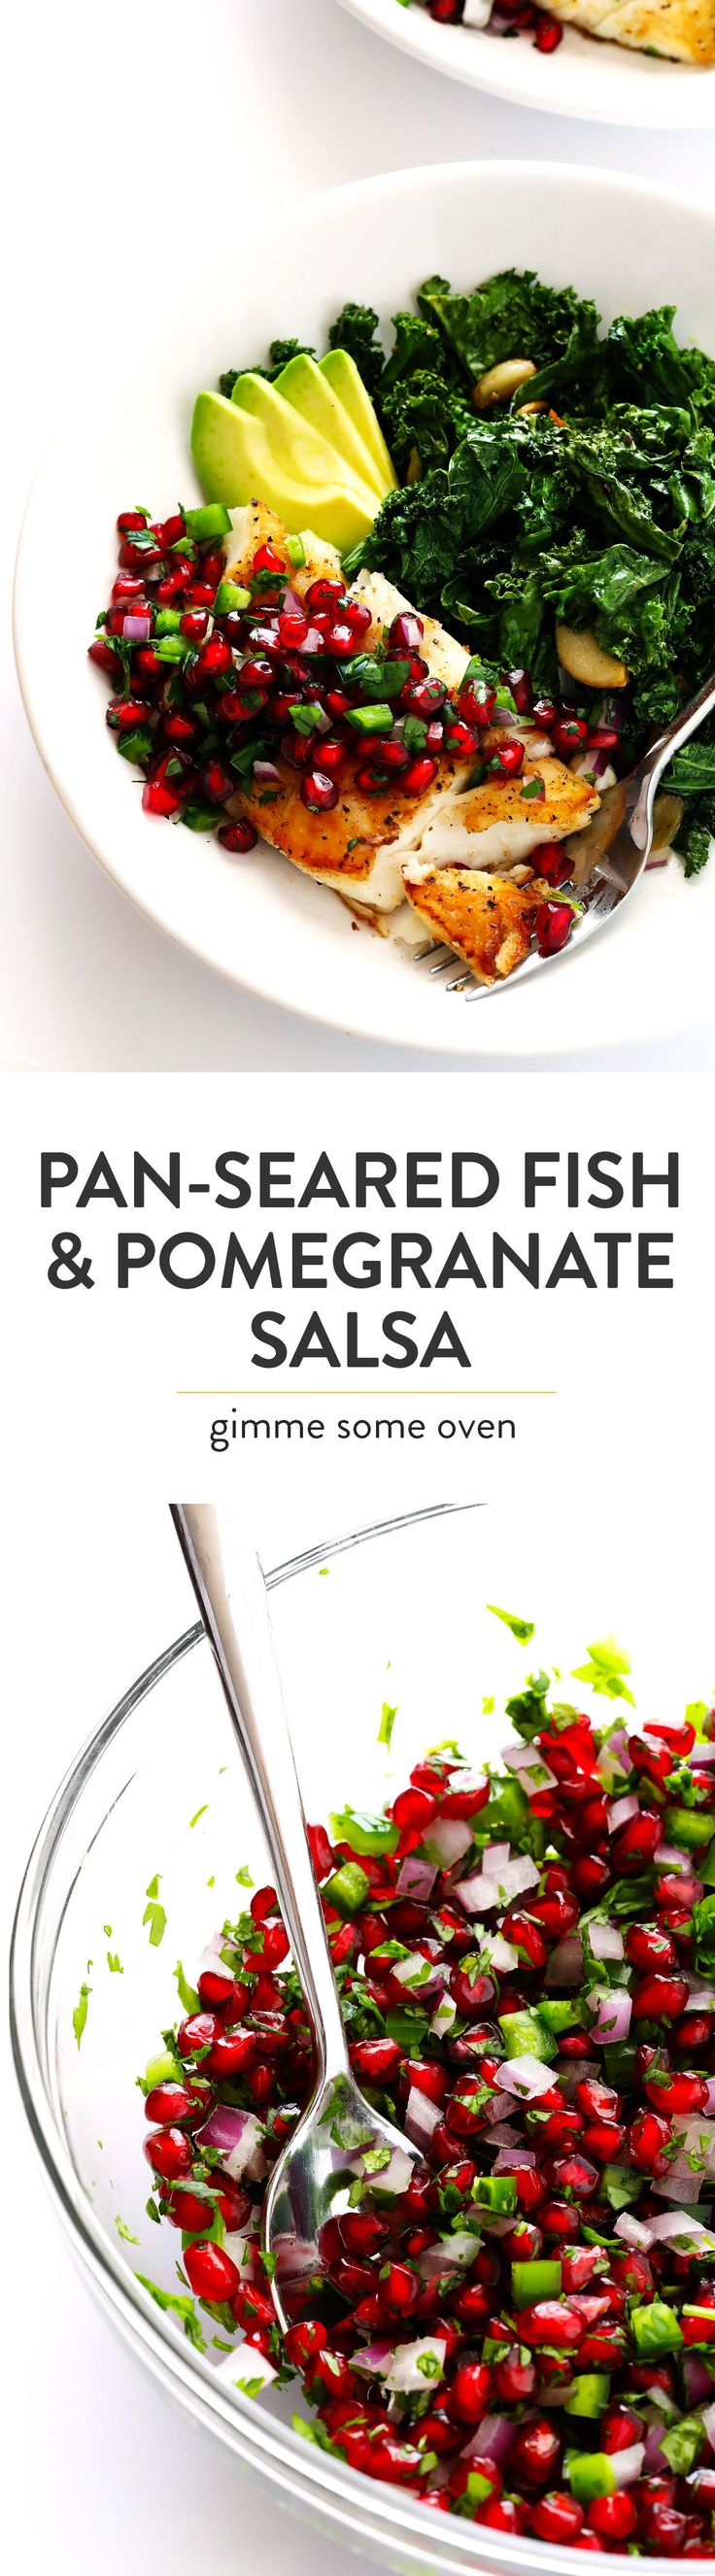 This 20-Minute Pan-Seared Fish is topped with a sweet pomegranate salsa, and serve up with fresh avocado and garlicky kale.  It's an quick and easy dinner recipe that you can make with your favorite fish (halibut, cod, salmon, tilapia, etc.) that's also naturally gluten-free, and SO delicious! | Gimme Some Oven